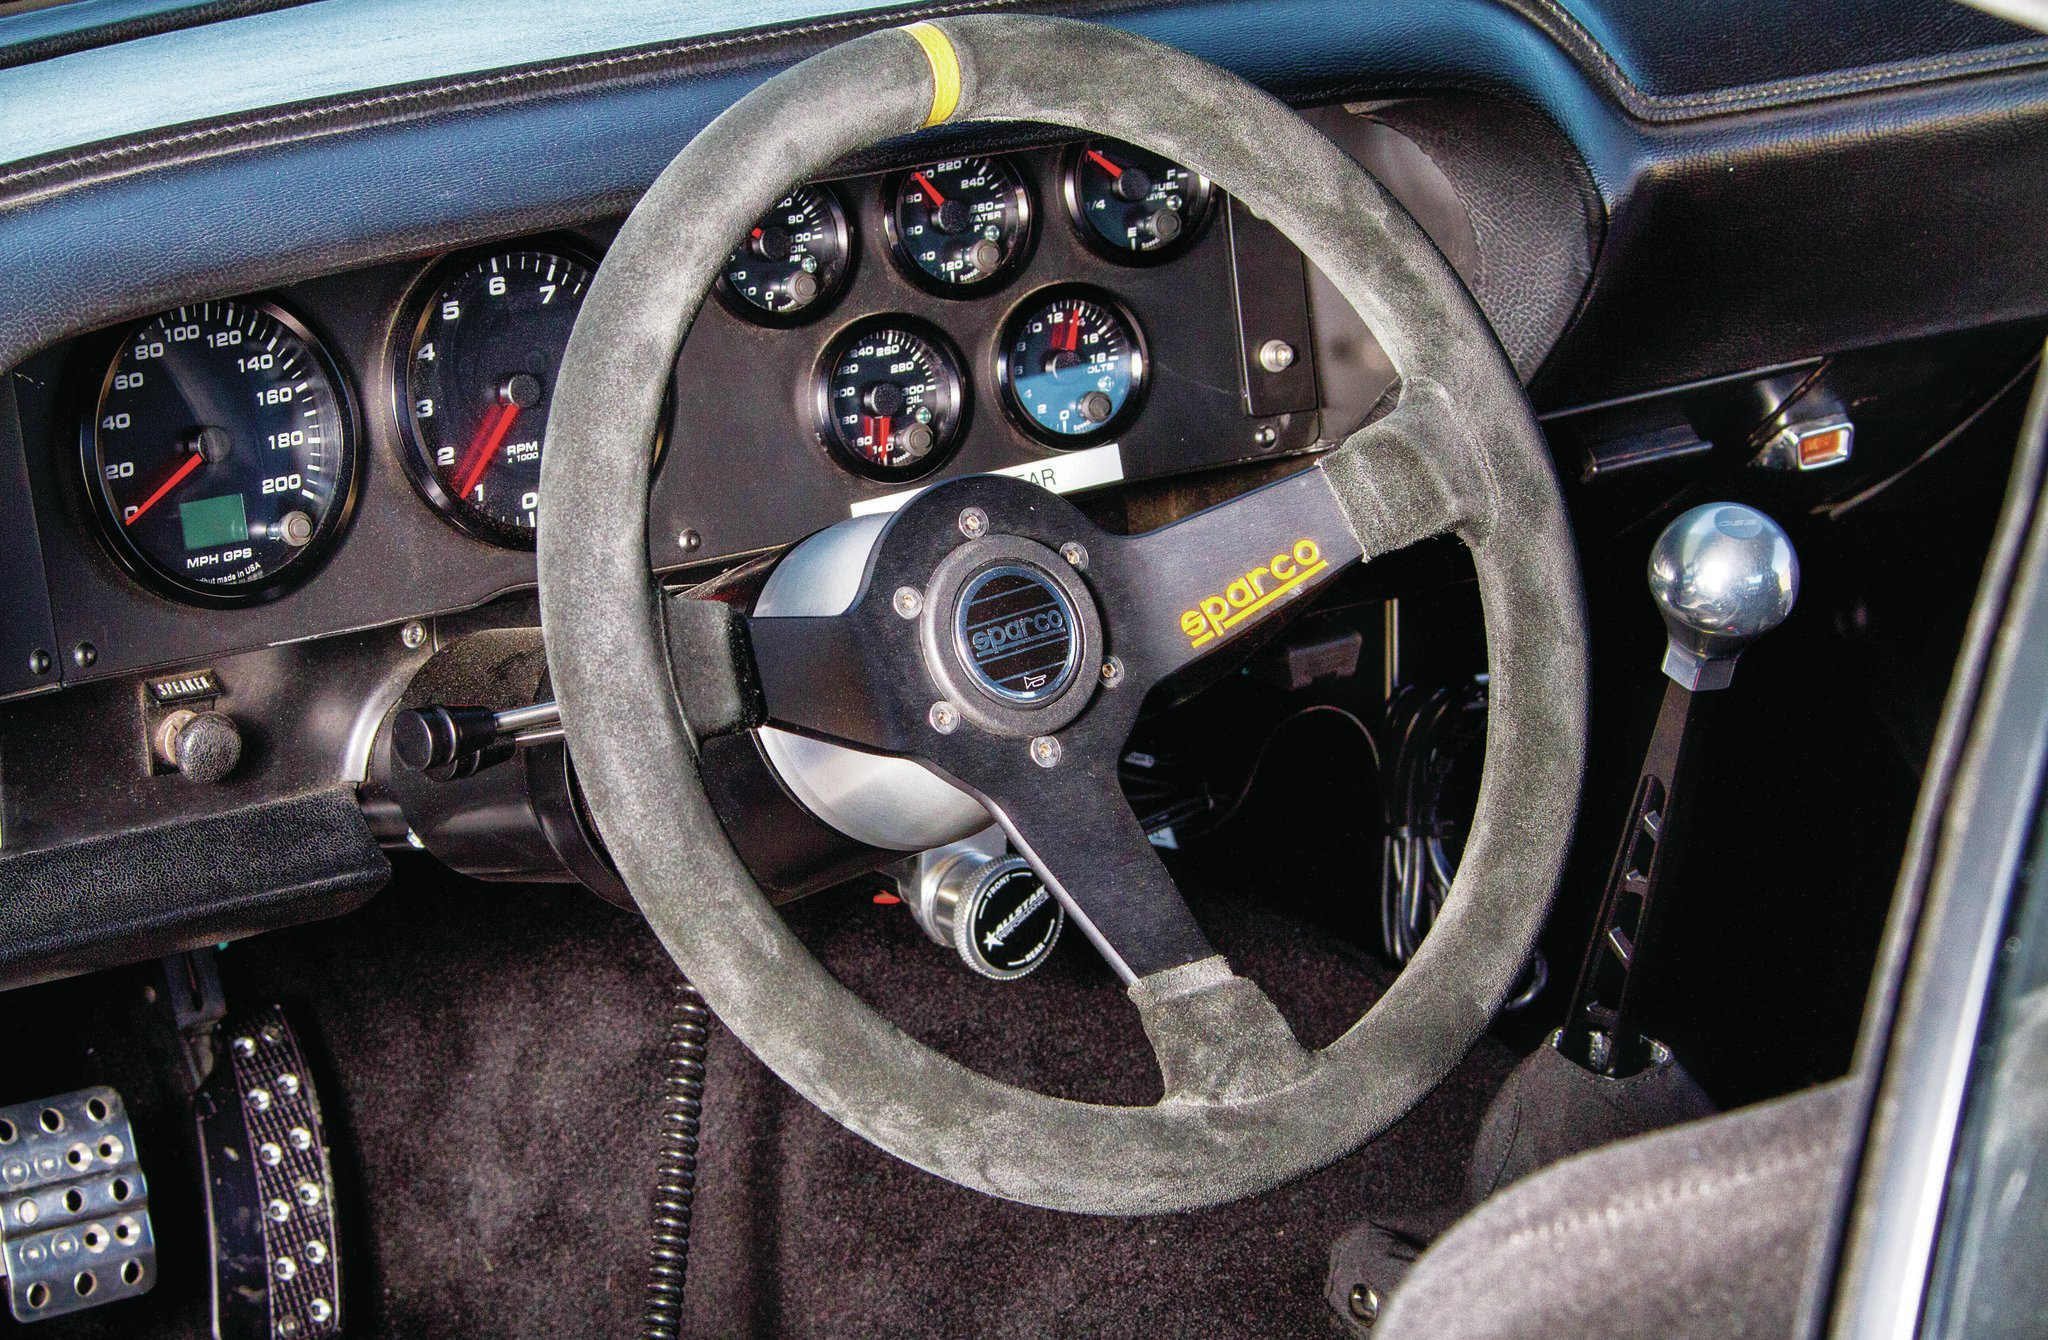 Speedhut gauges handle rpm and speedometer duty while an American Autowire system takes care of the wiring. The car uses a complete AIM Sports data-acquisition system to report back from the track.